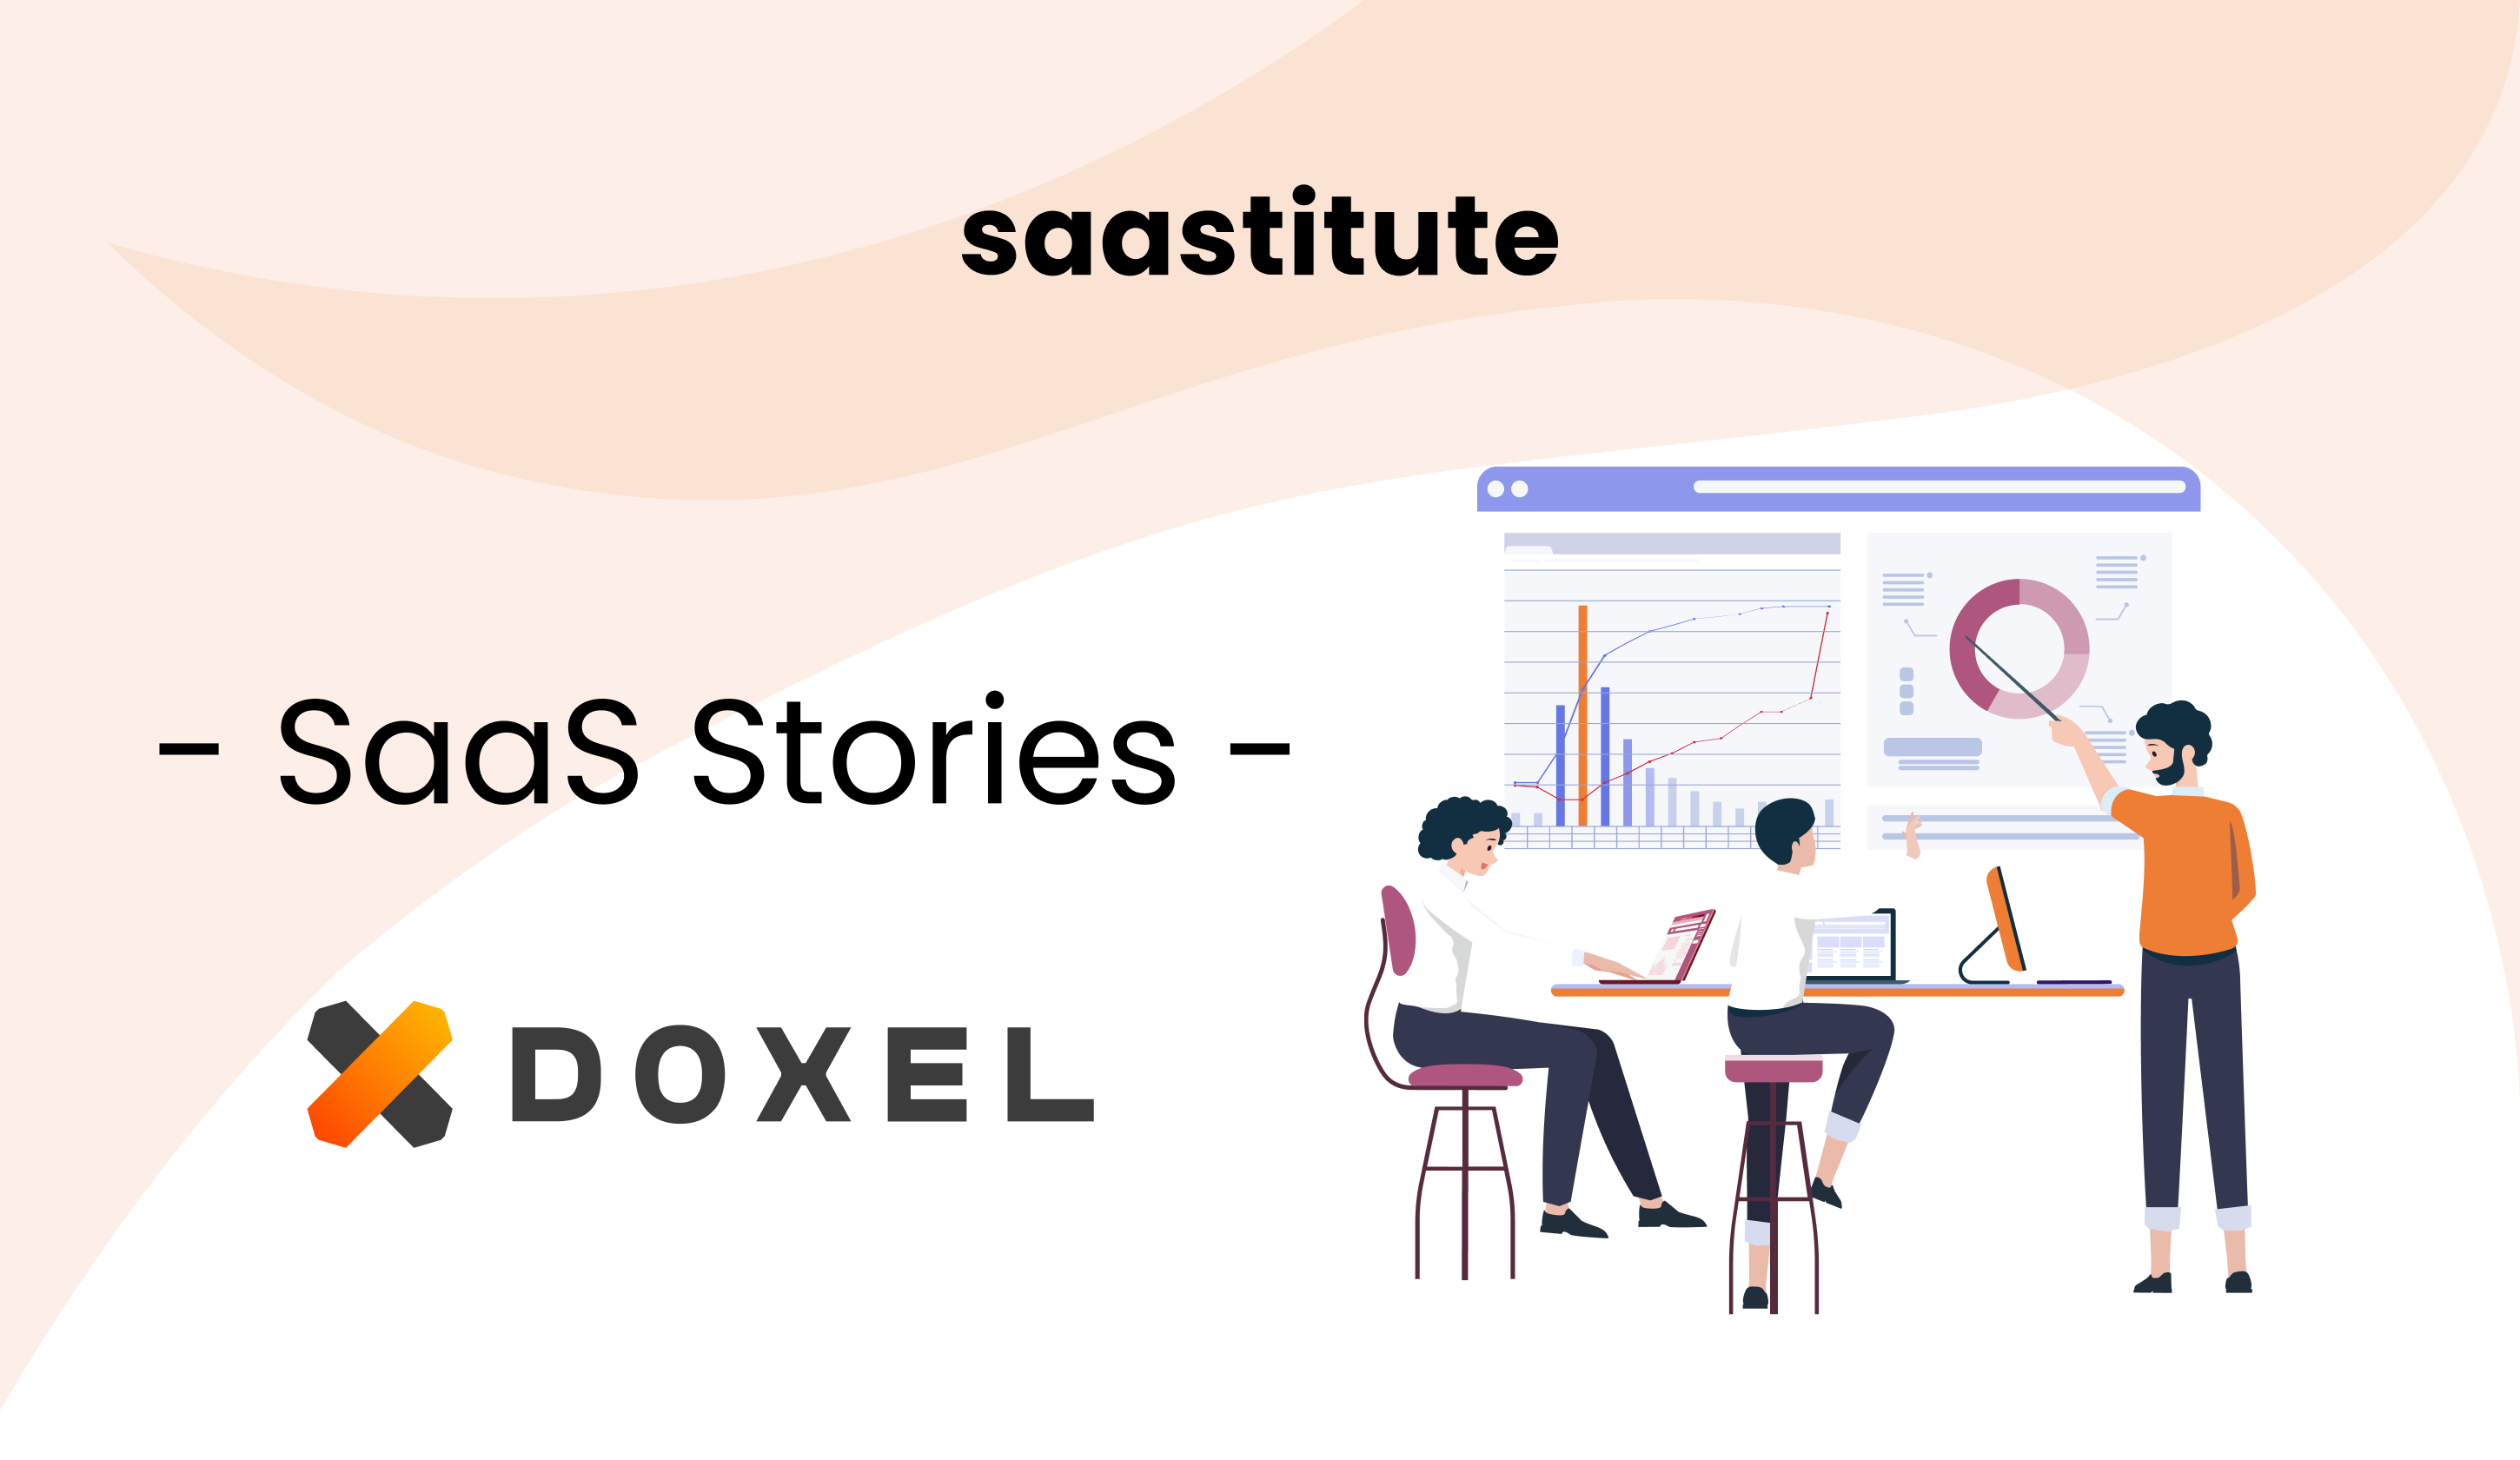 The Doxel Story